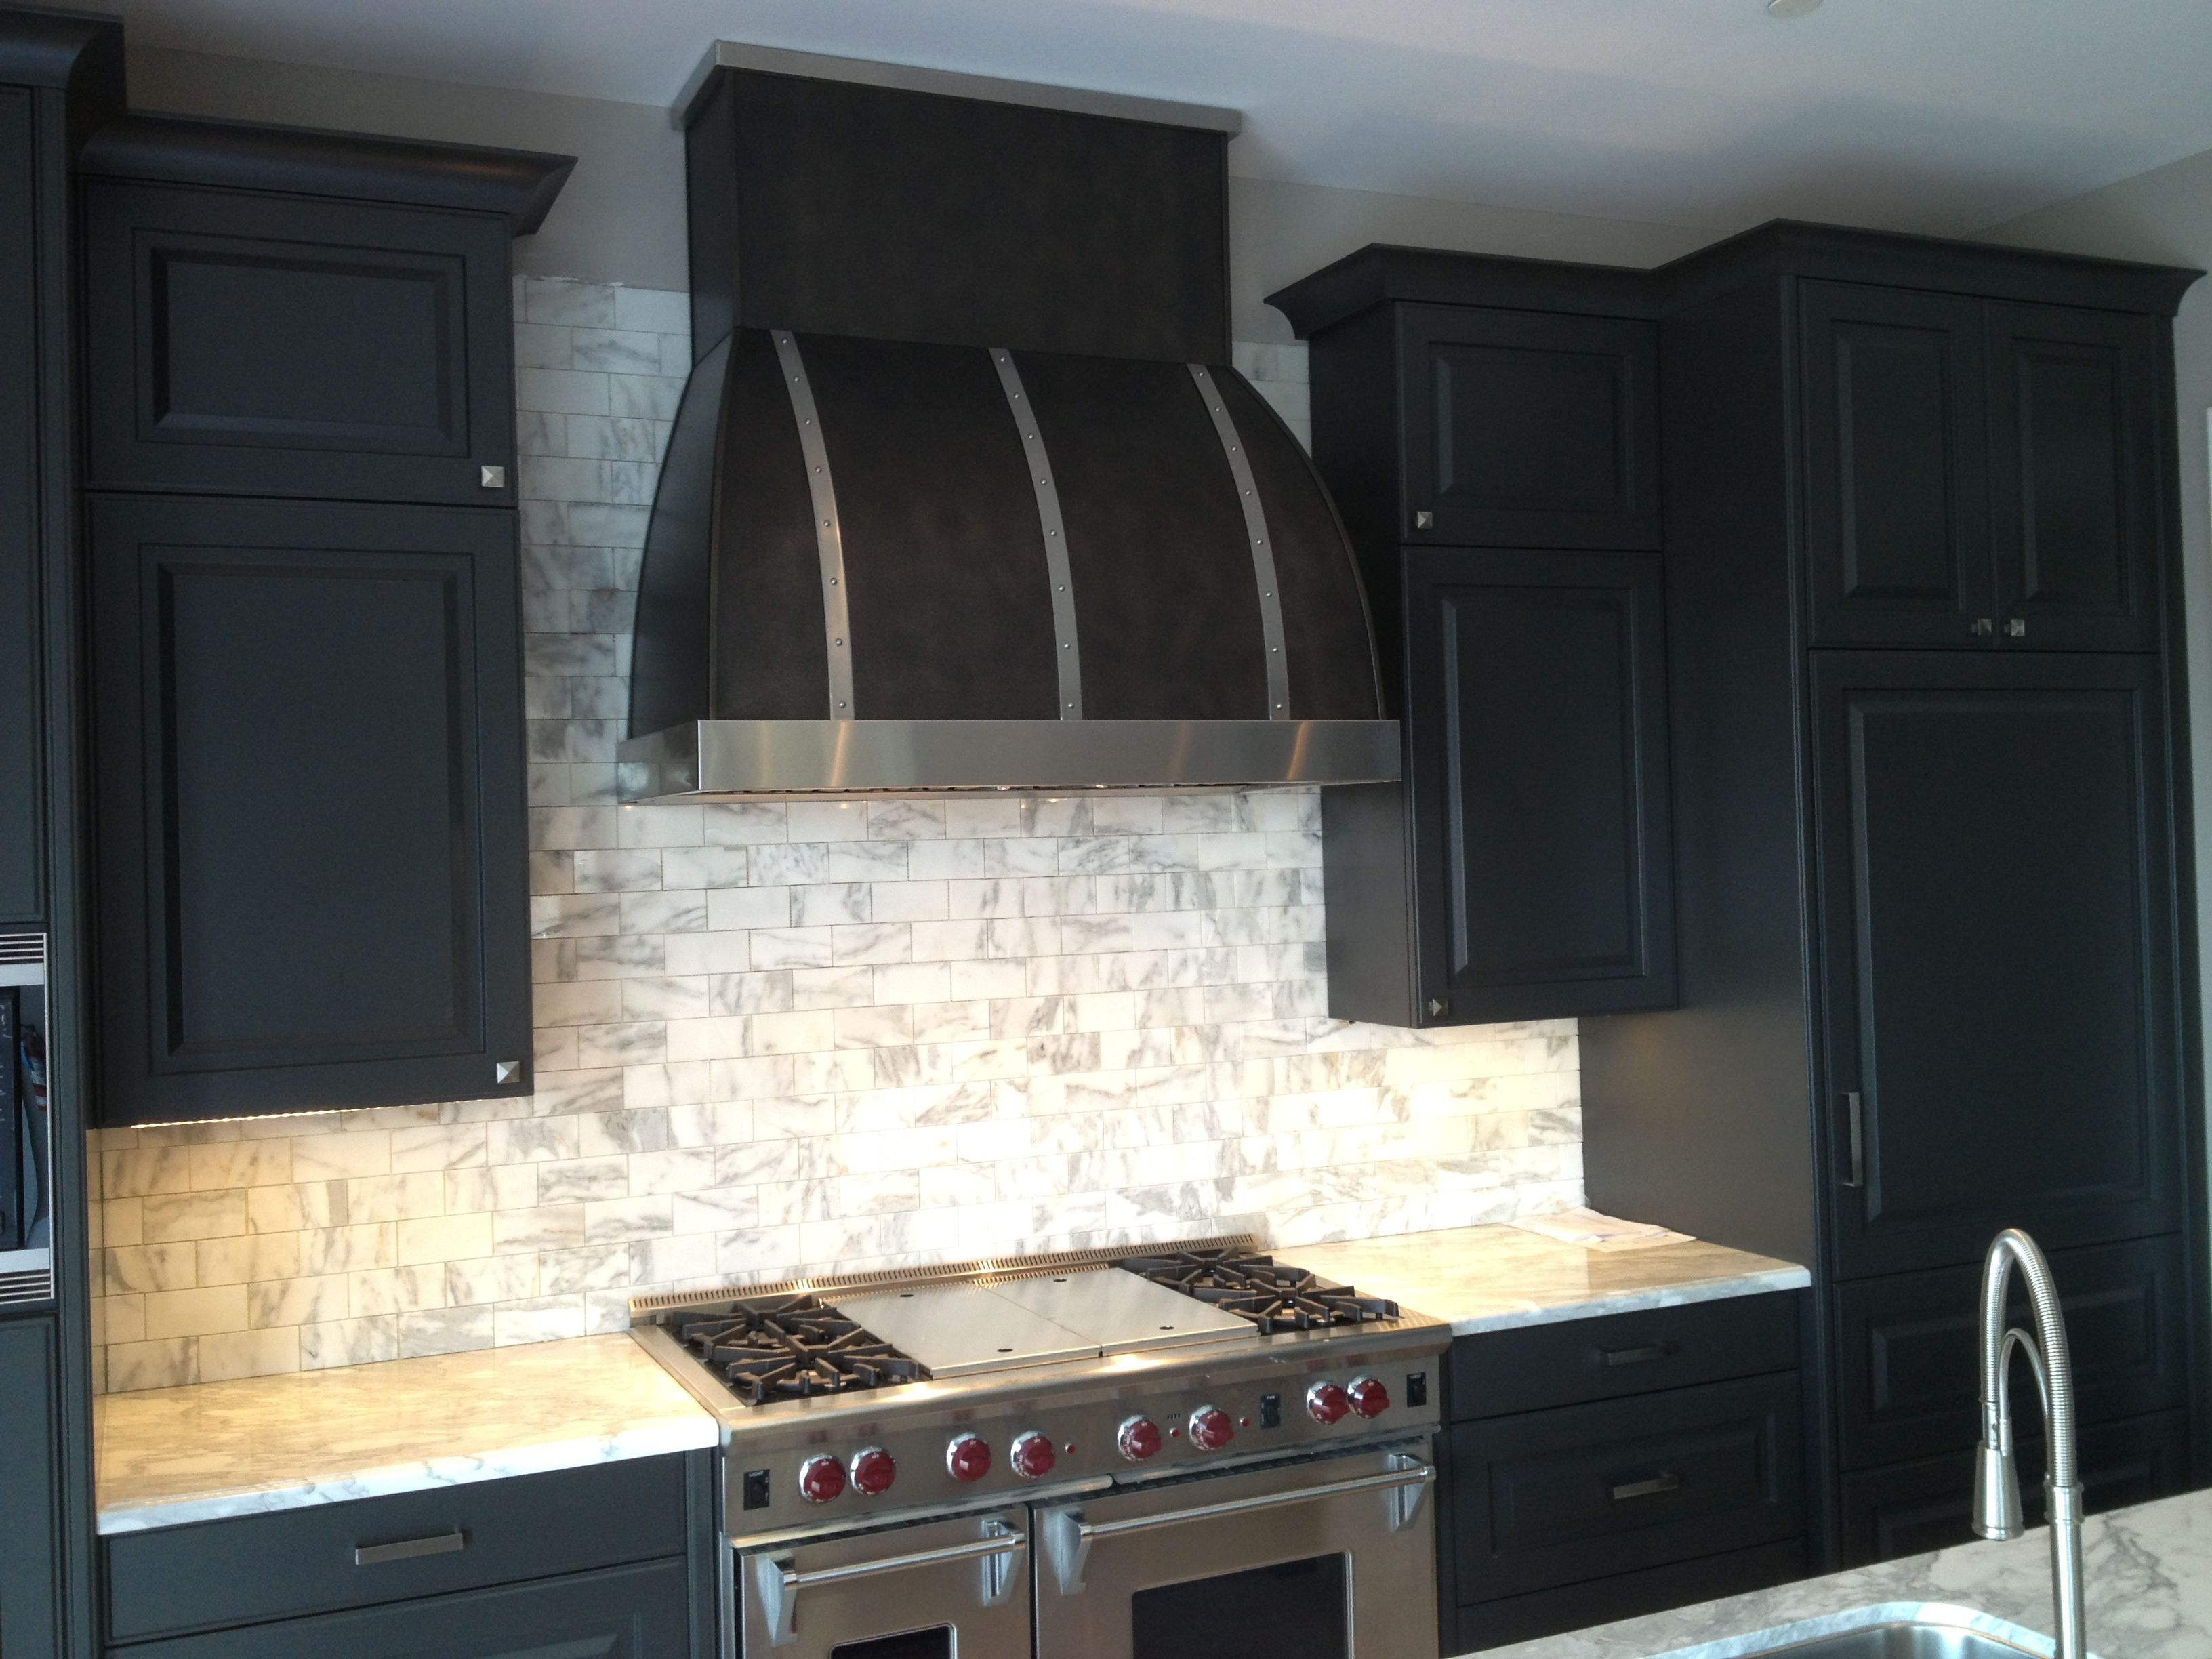 Kitchen Cabinets With Black Trim Black Range Hood With Brushed Stainless Steel Trim By Www